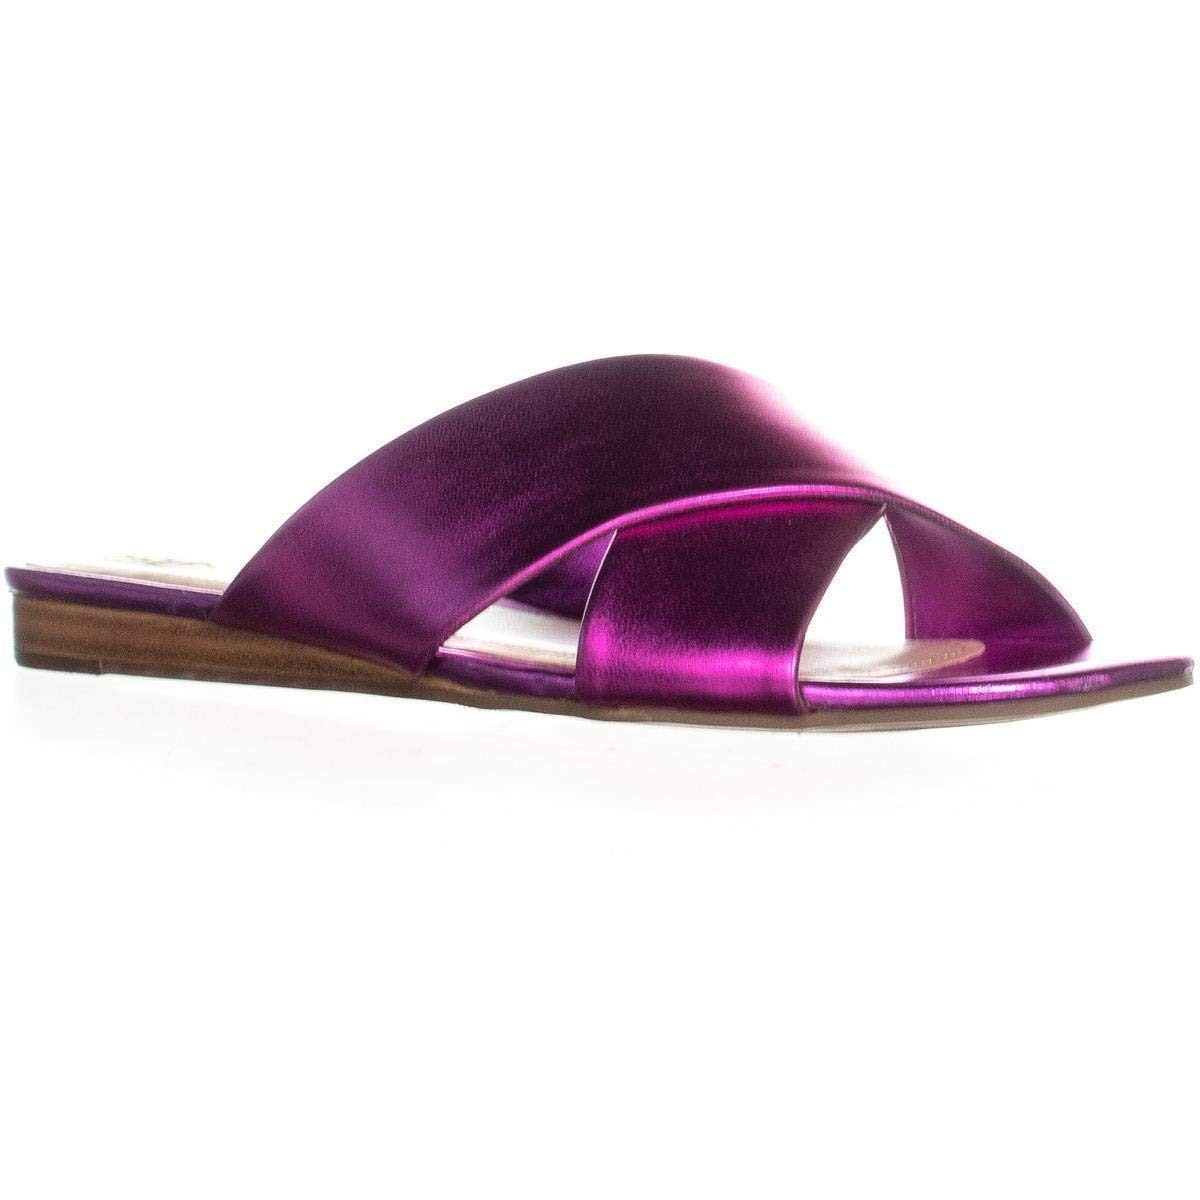 8a065d0efbe4 Buy Guess Women s Sandals Online at Overstock